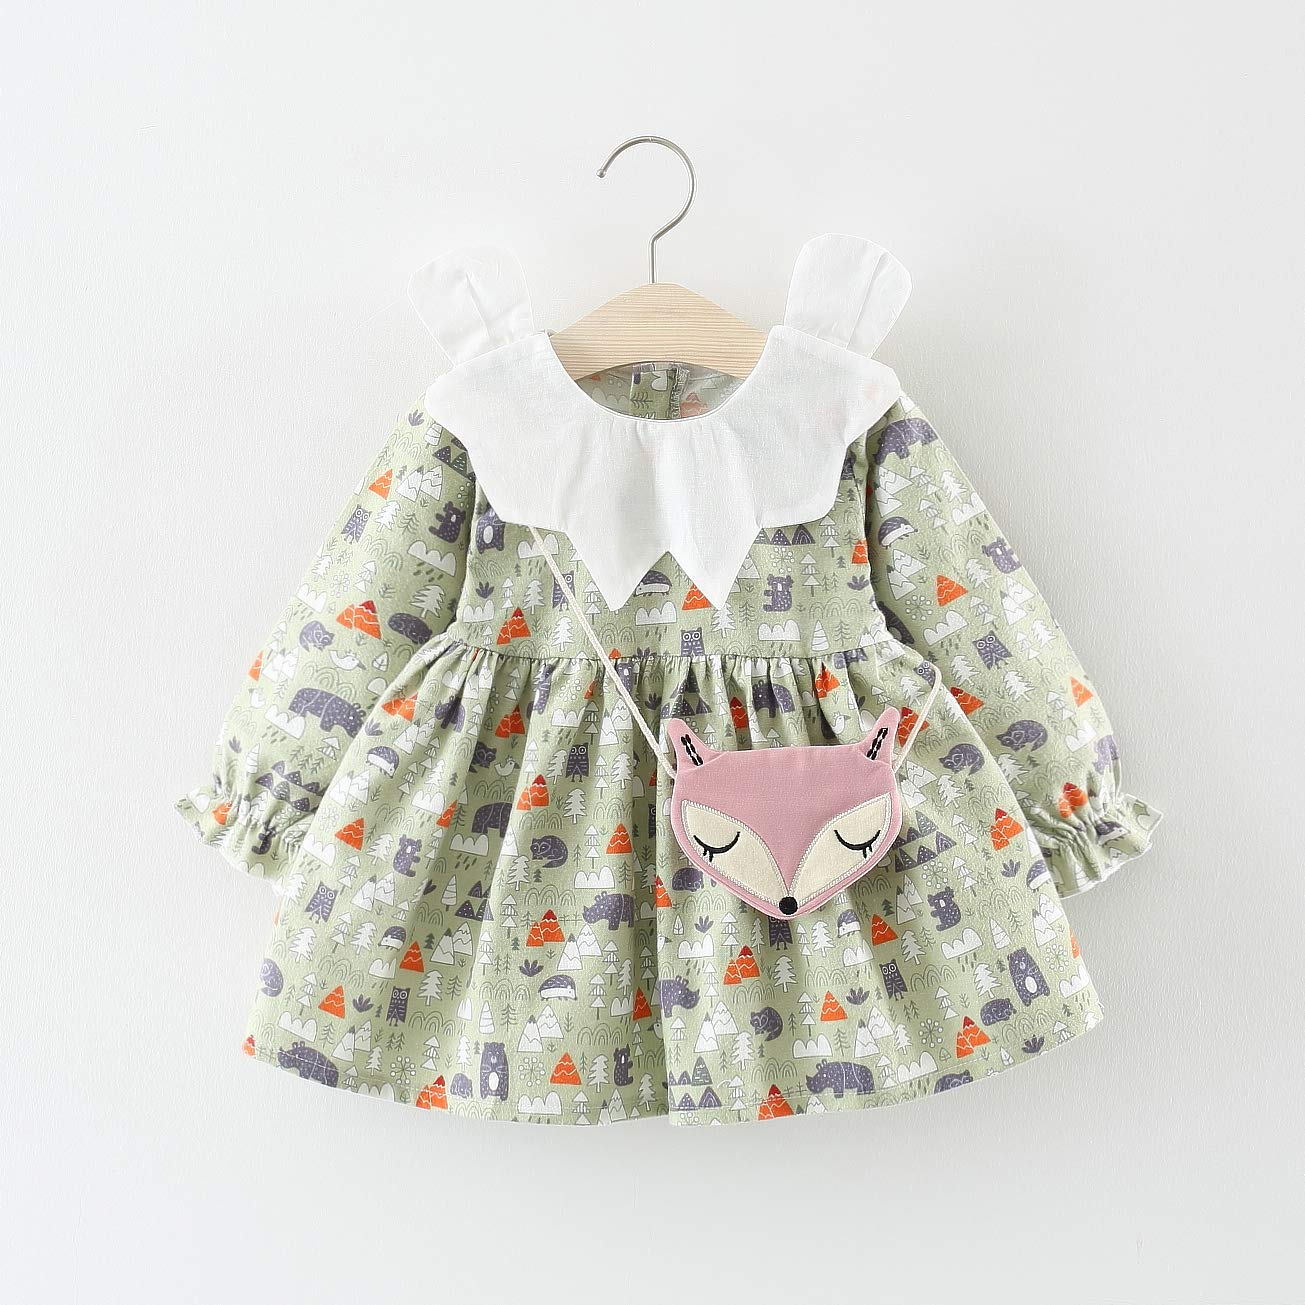 Shawnlen Toddler Infant Baby Girl Casual Dress One Piece Long Sleeve Cartoon Printing Pleated Tutu Dress 0.5-3 Years